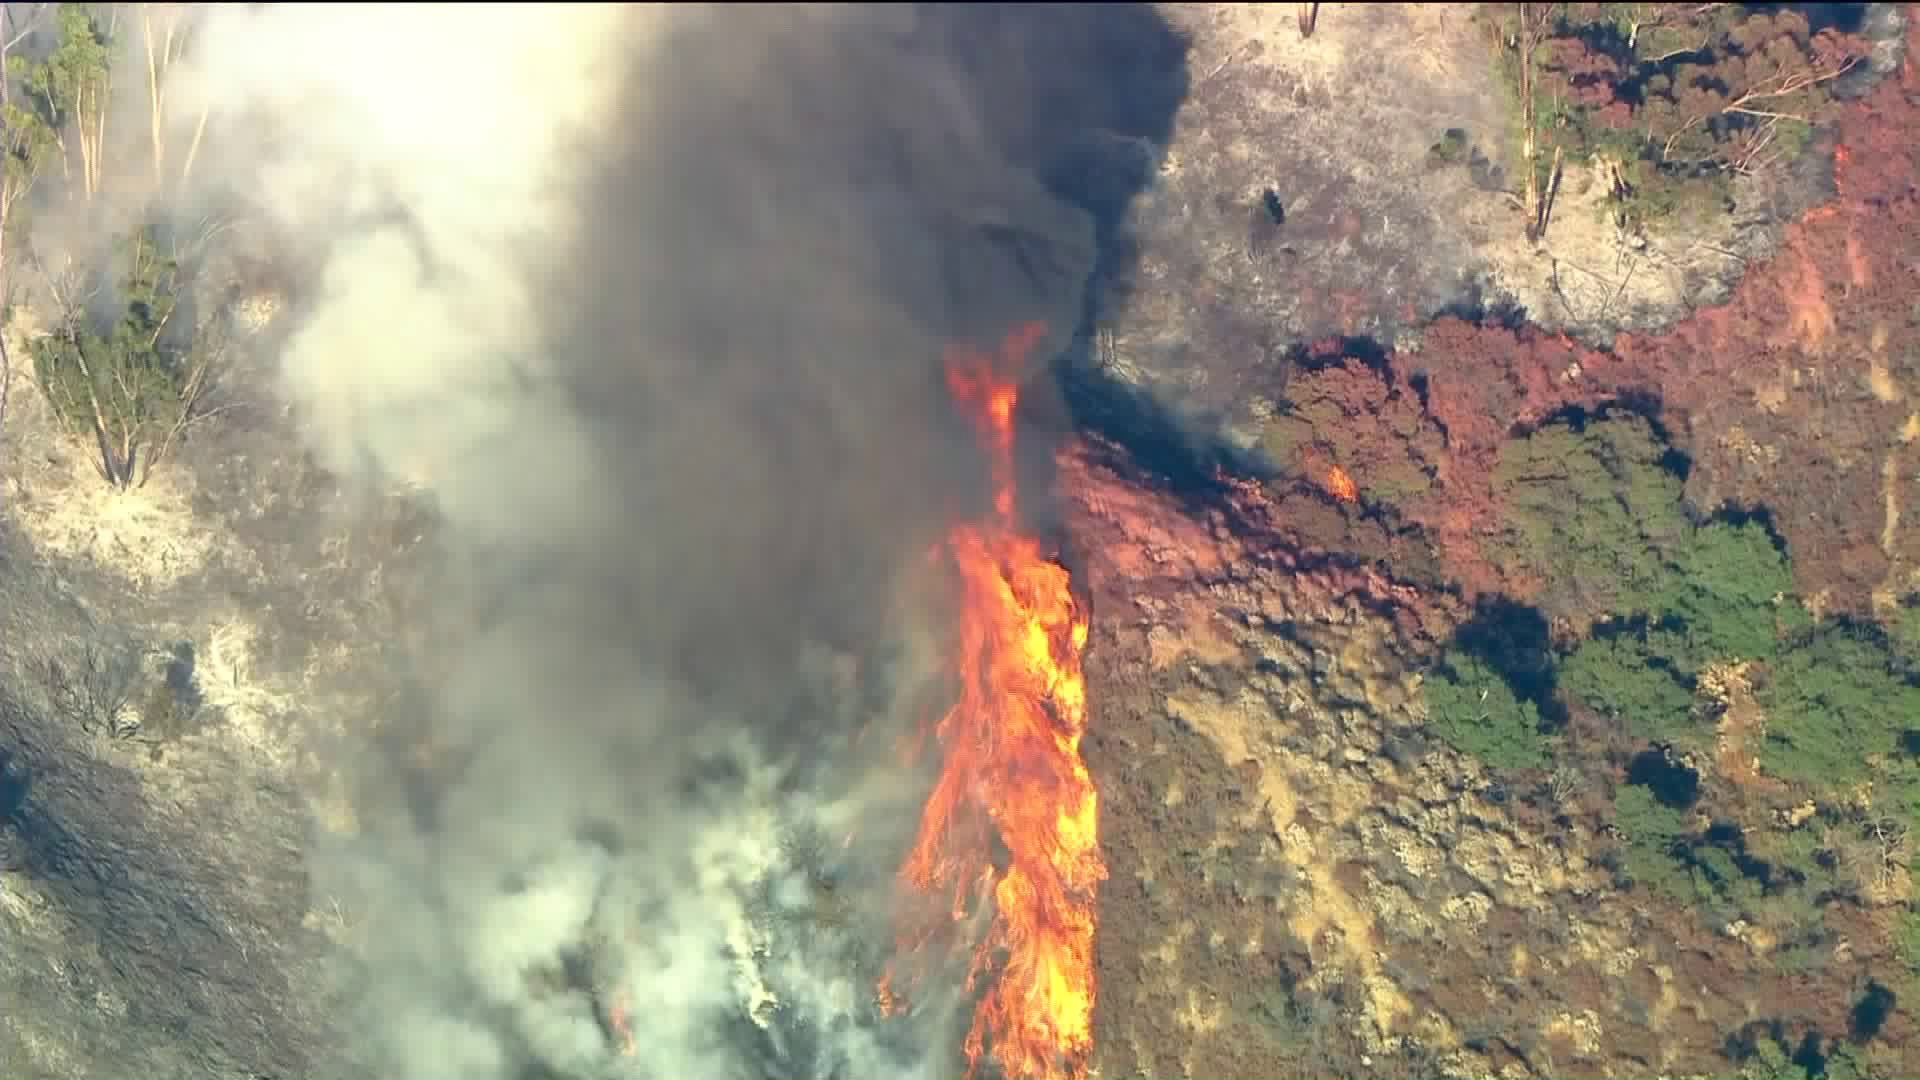 The Skyline Fire was burning in Corona on Aug. 13, 2020. (KTLA)